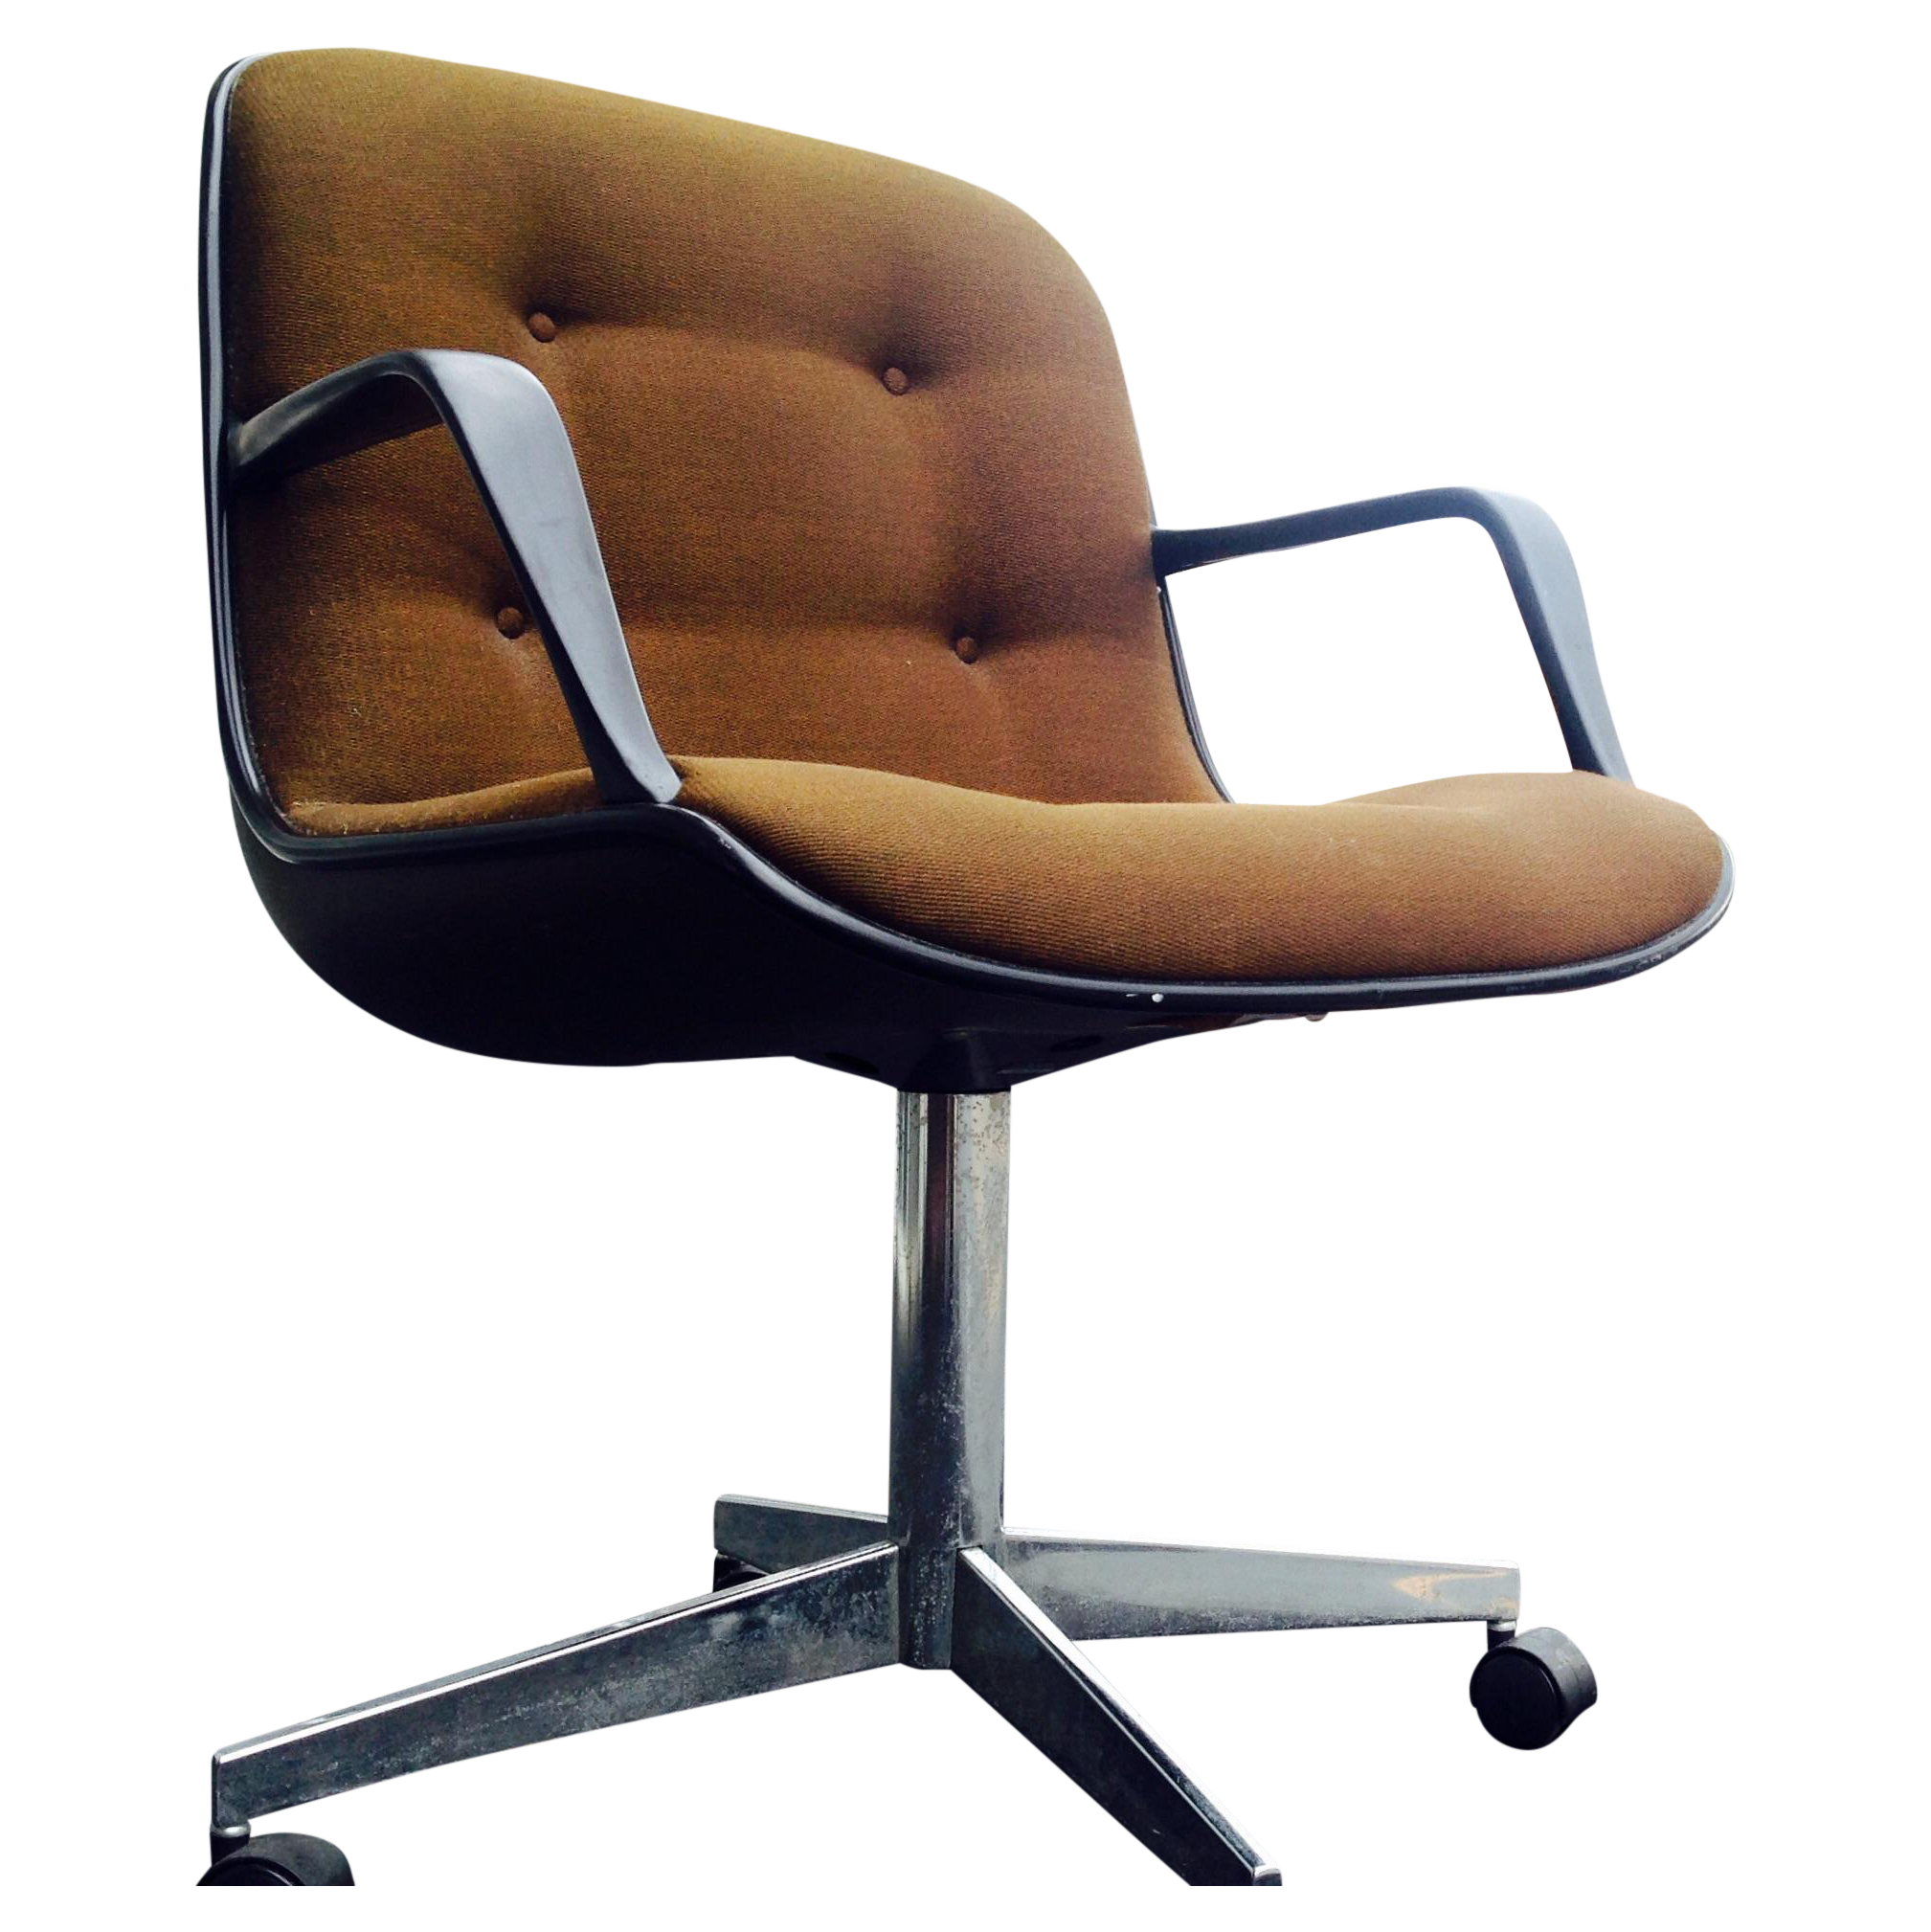 image of steelcase mid century brown office chair chair mid century office